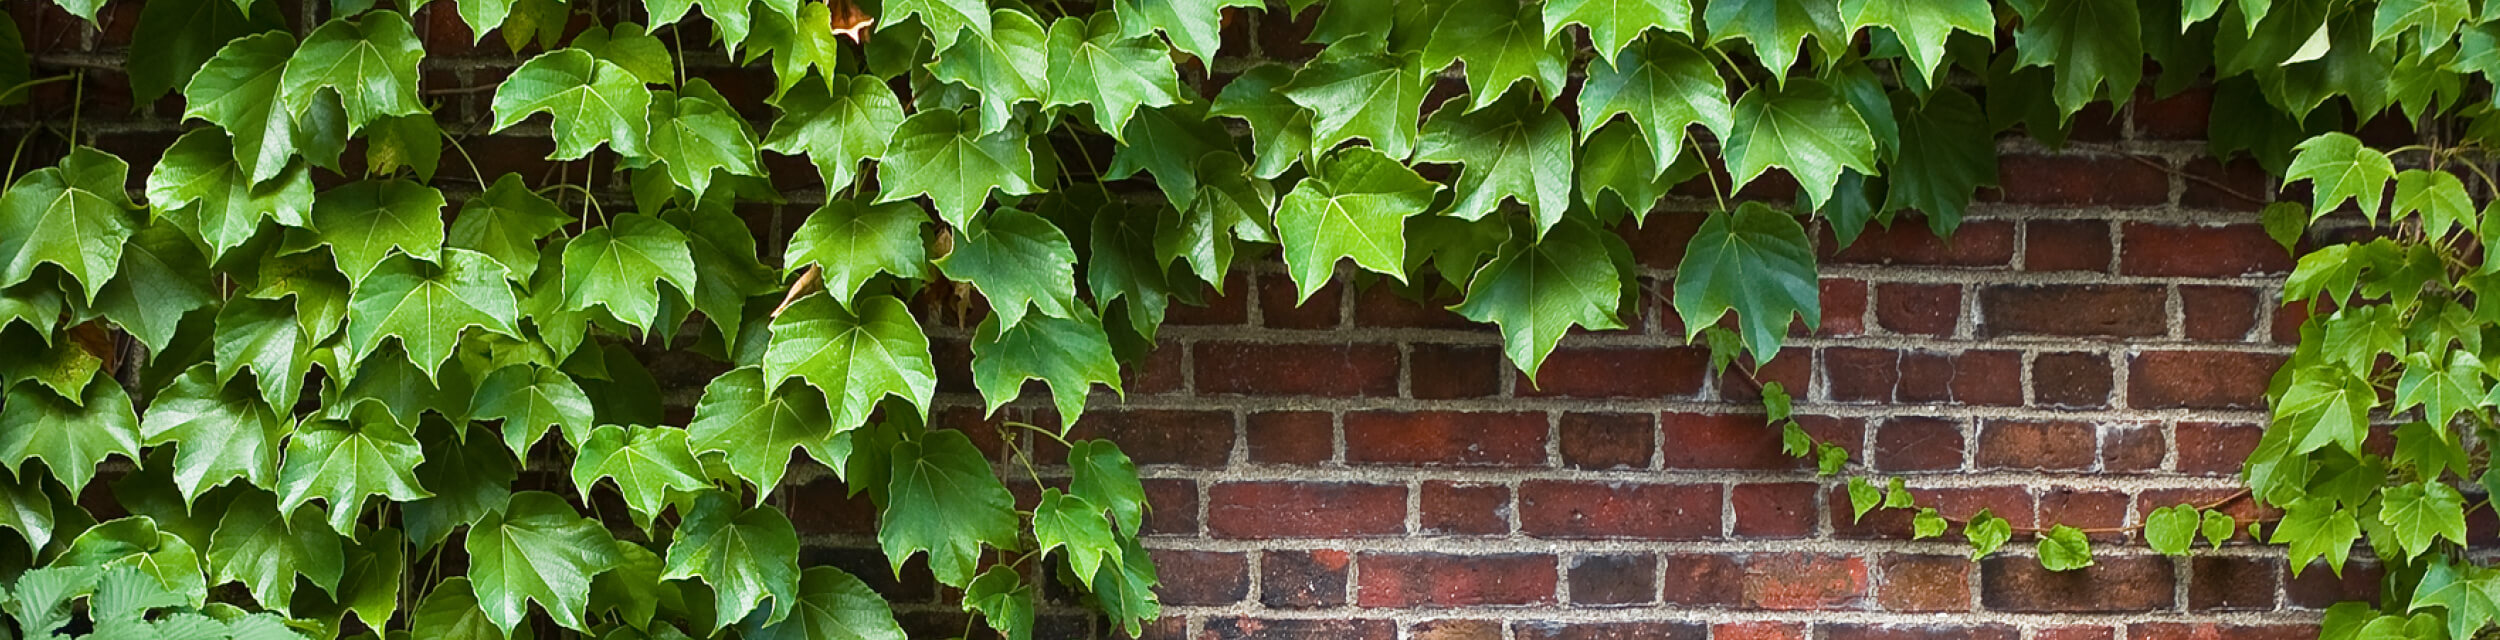 wide angle color photo of green ivy on a brick wall